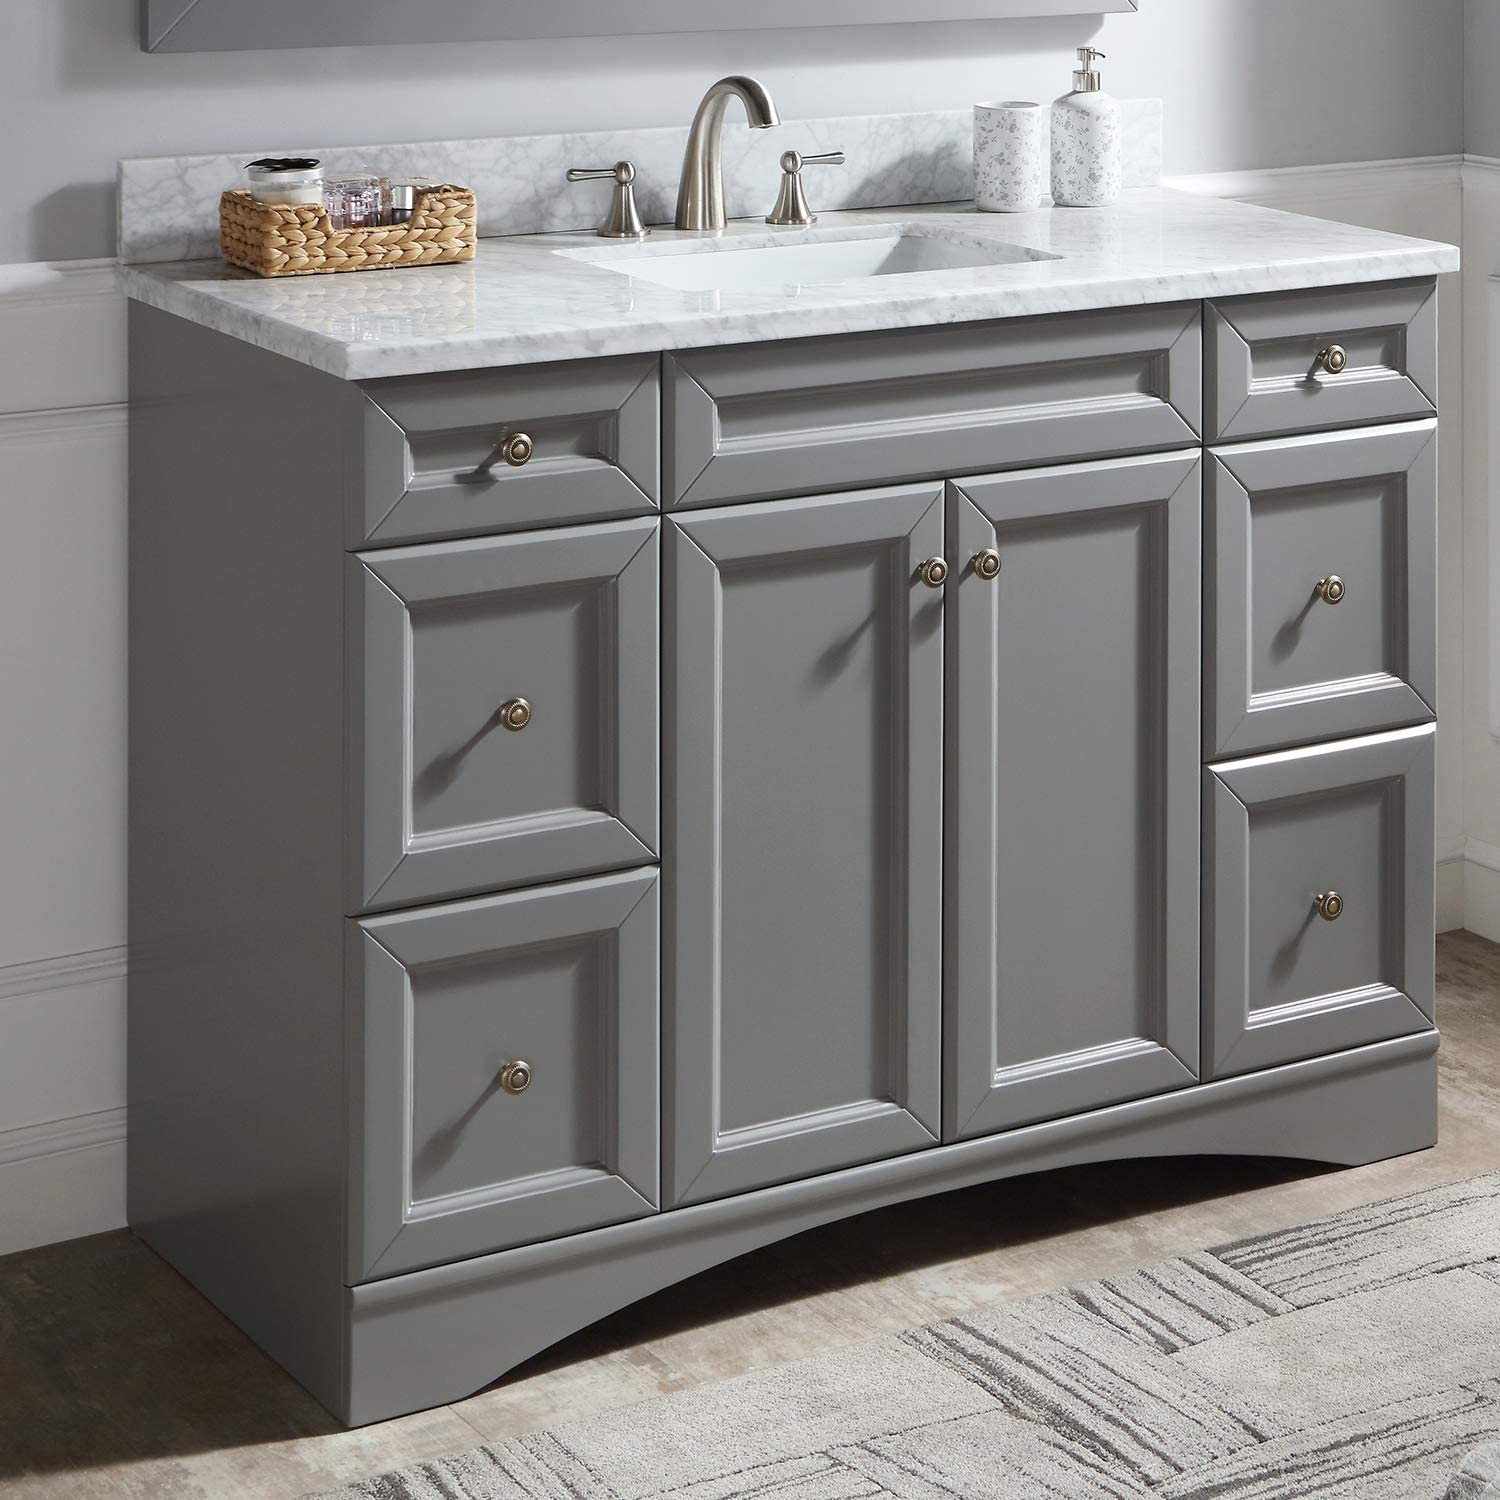 Amazon Com 48 Single Bathroom Vanity In Grey With Marble Top And Round Sink 48 Inches Gray Kitchen Dining